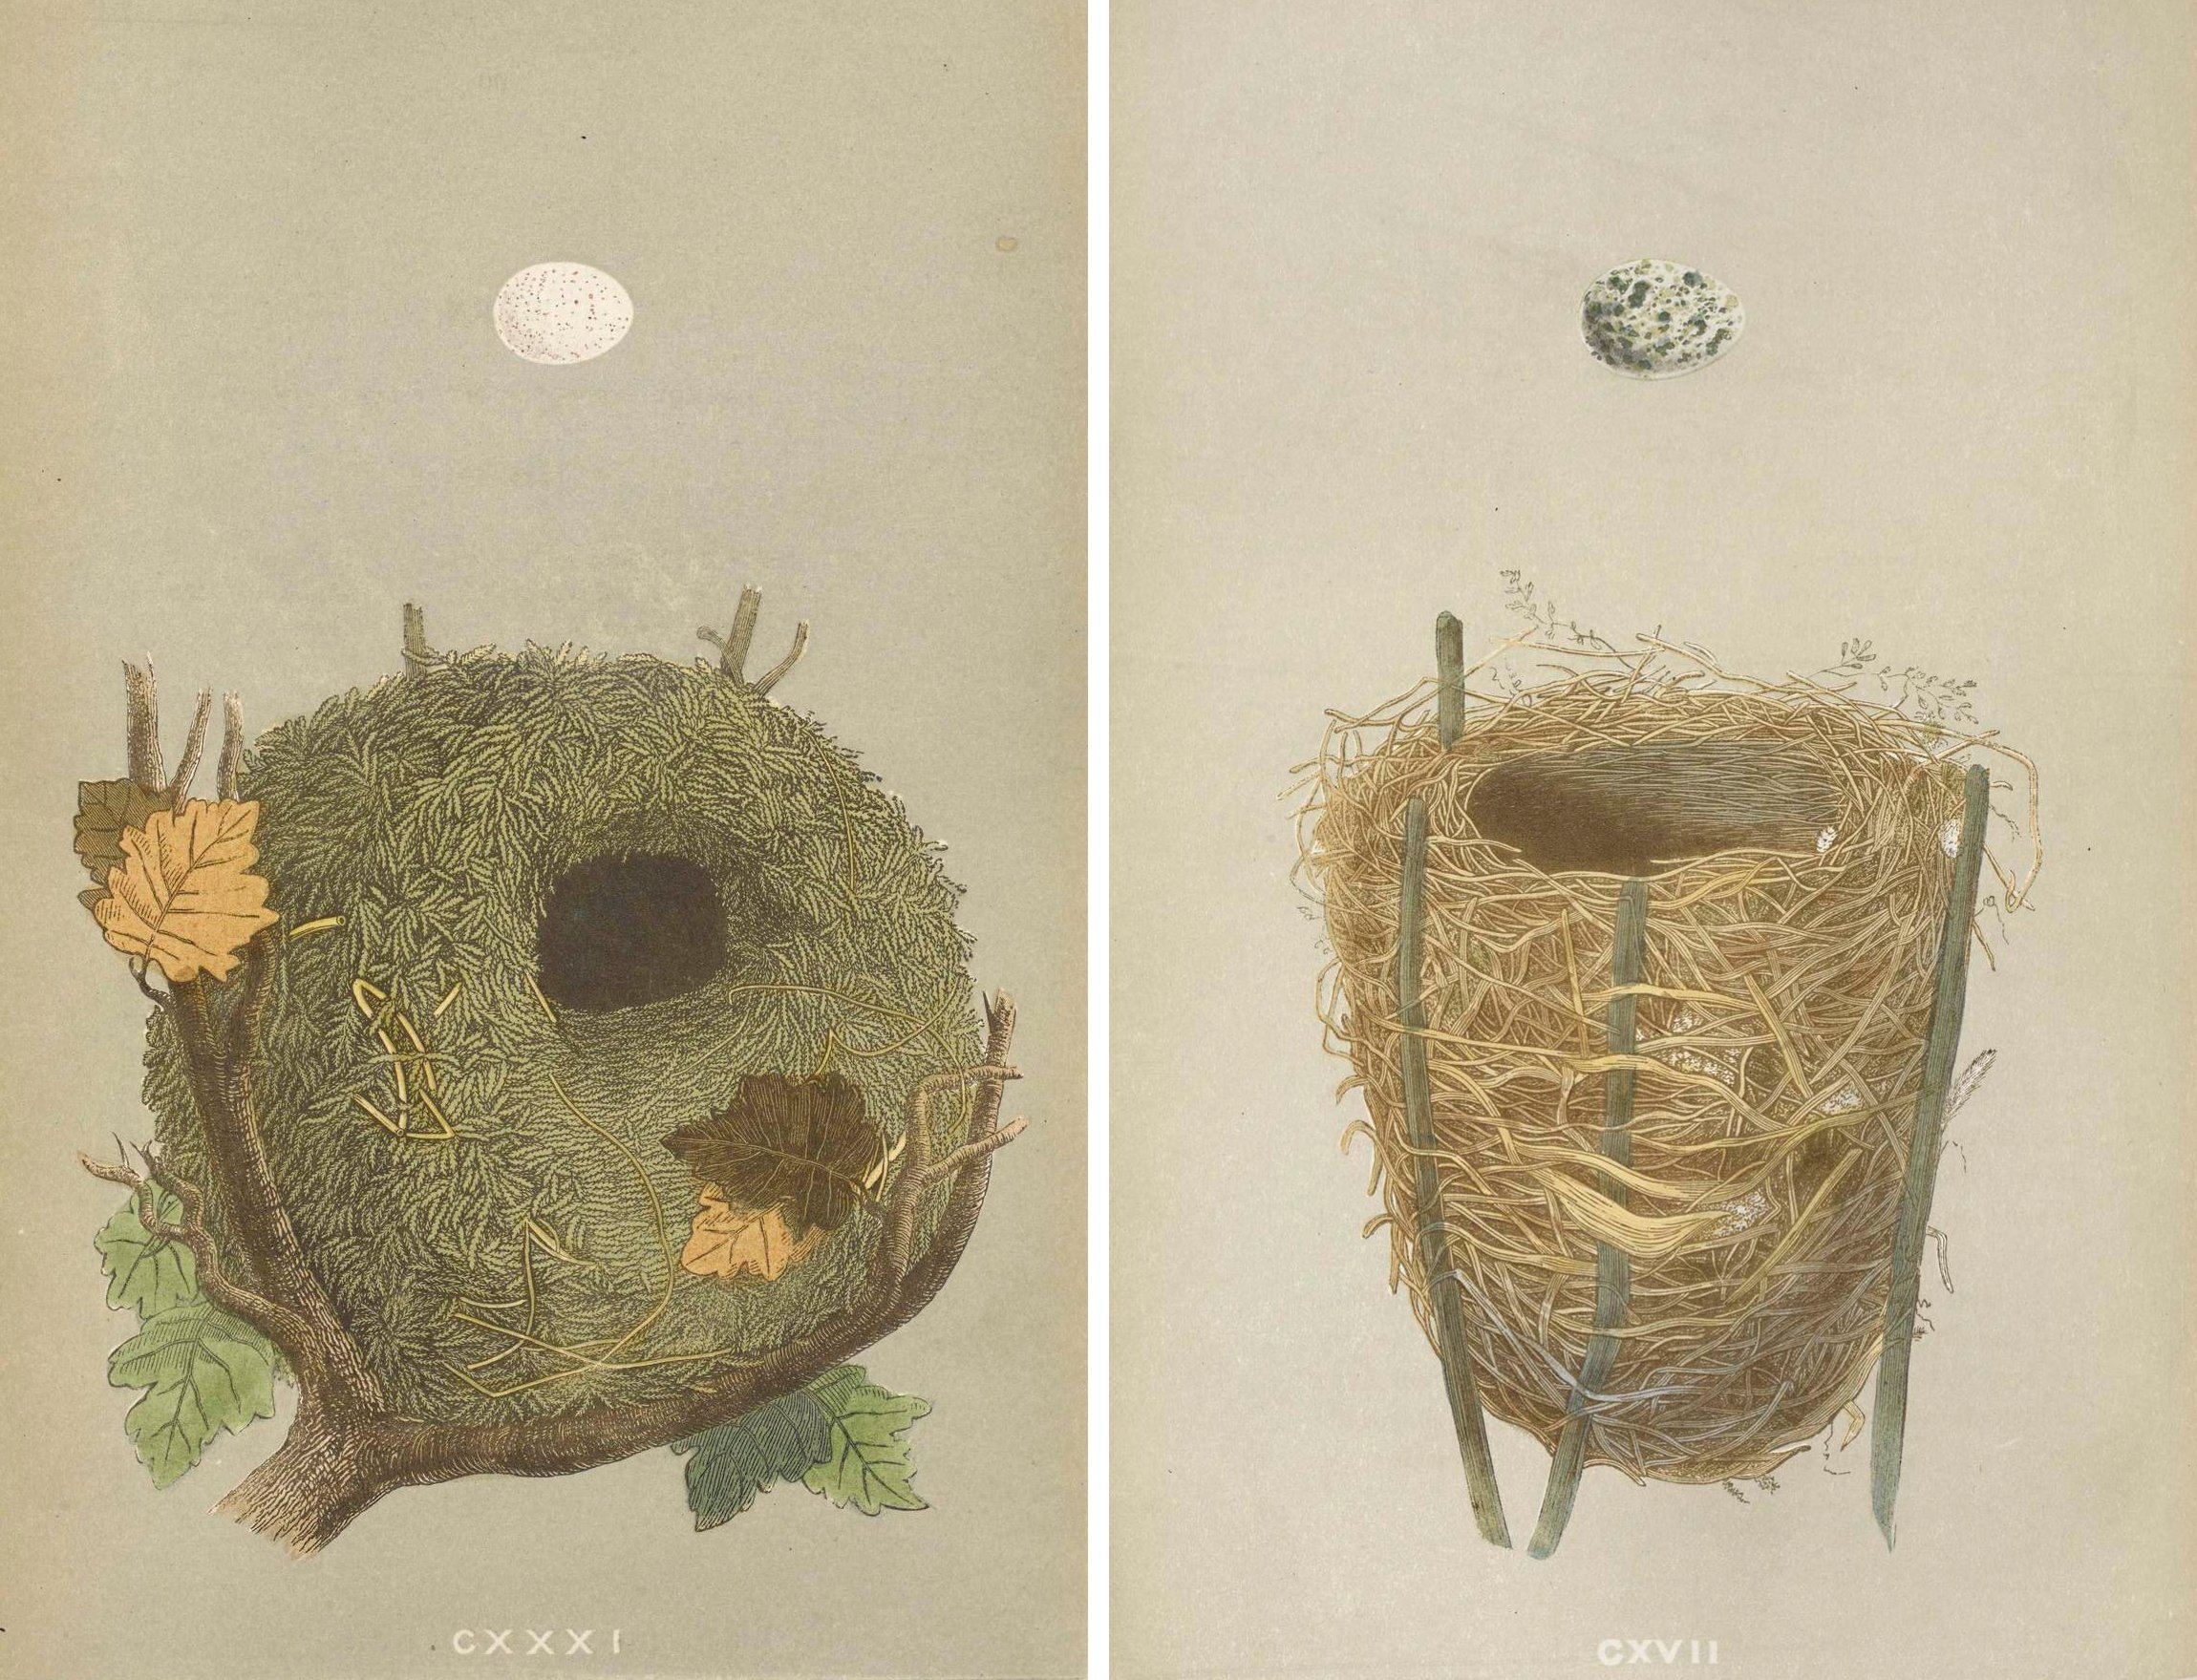 The paper Zoo, nests